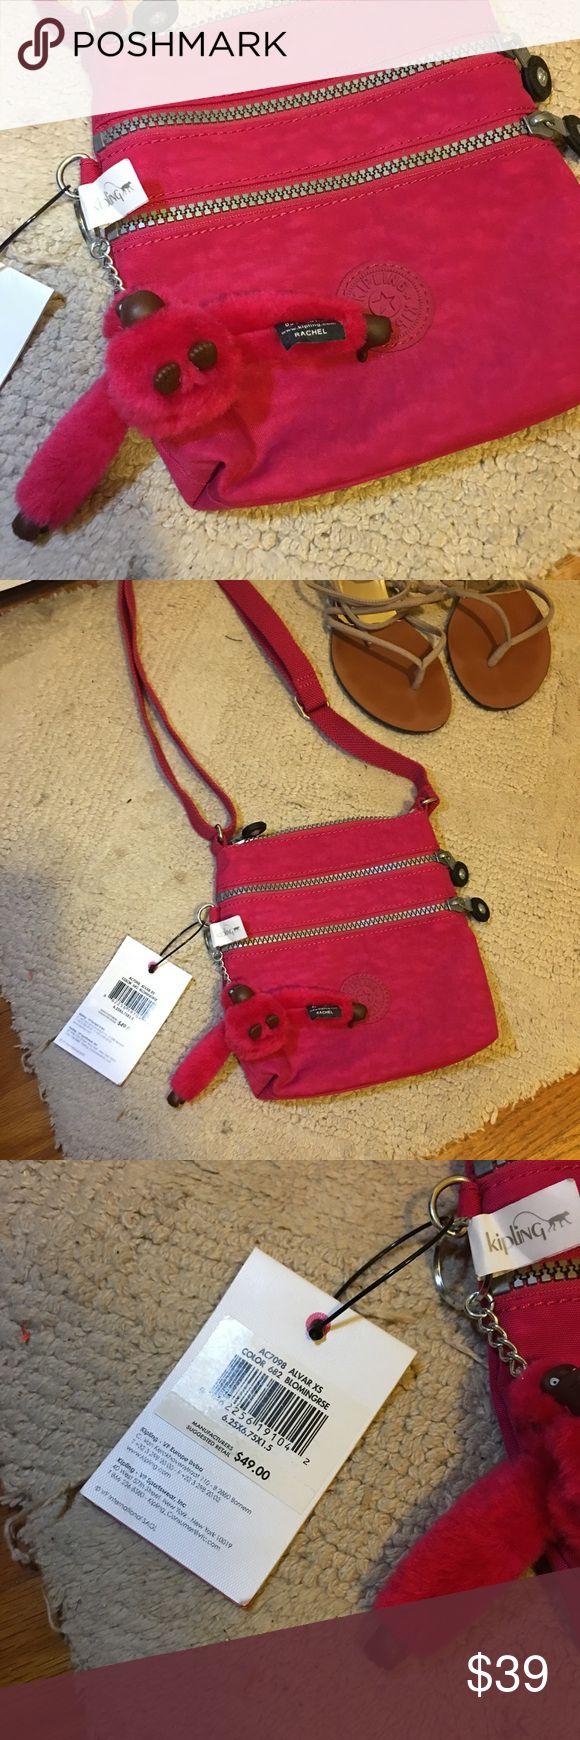 """NWT Kipling crossbody bag Kipling branded. New with TAG. Colored in pink.  A terrific little crossbody bag for a look that is both functional and fashion forward. Great for hands-free travel or weekend jaunts, this pleasantly practical bag is outfitted with a zipped main compartment for wallet and keys and two zipped pockets on the front for easy access to cell phone, metro card and lip gloss.  Dimensions: 6.25"""" L x 6.75"""" H x 1.5"""" D  Retail $49 plus tax Kipling Bags Crossbody Bags"""